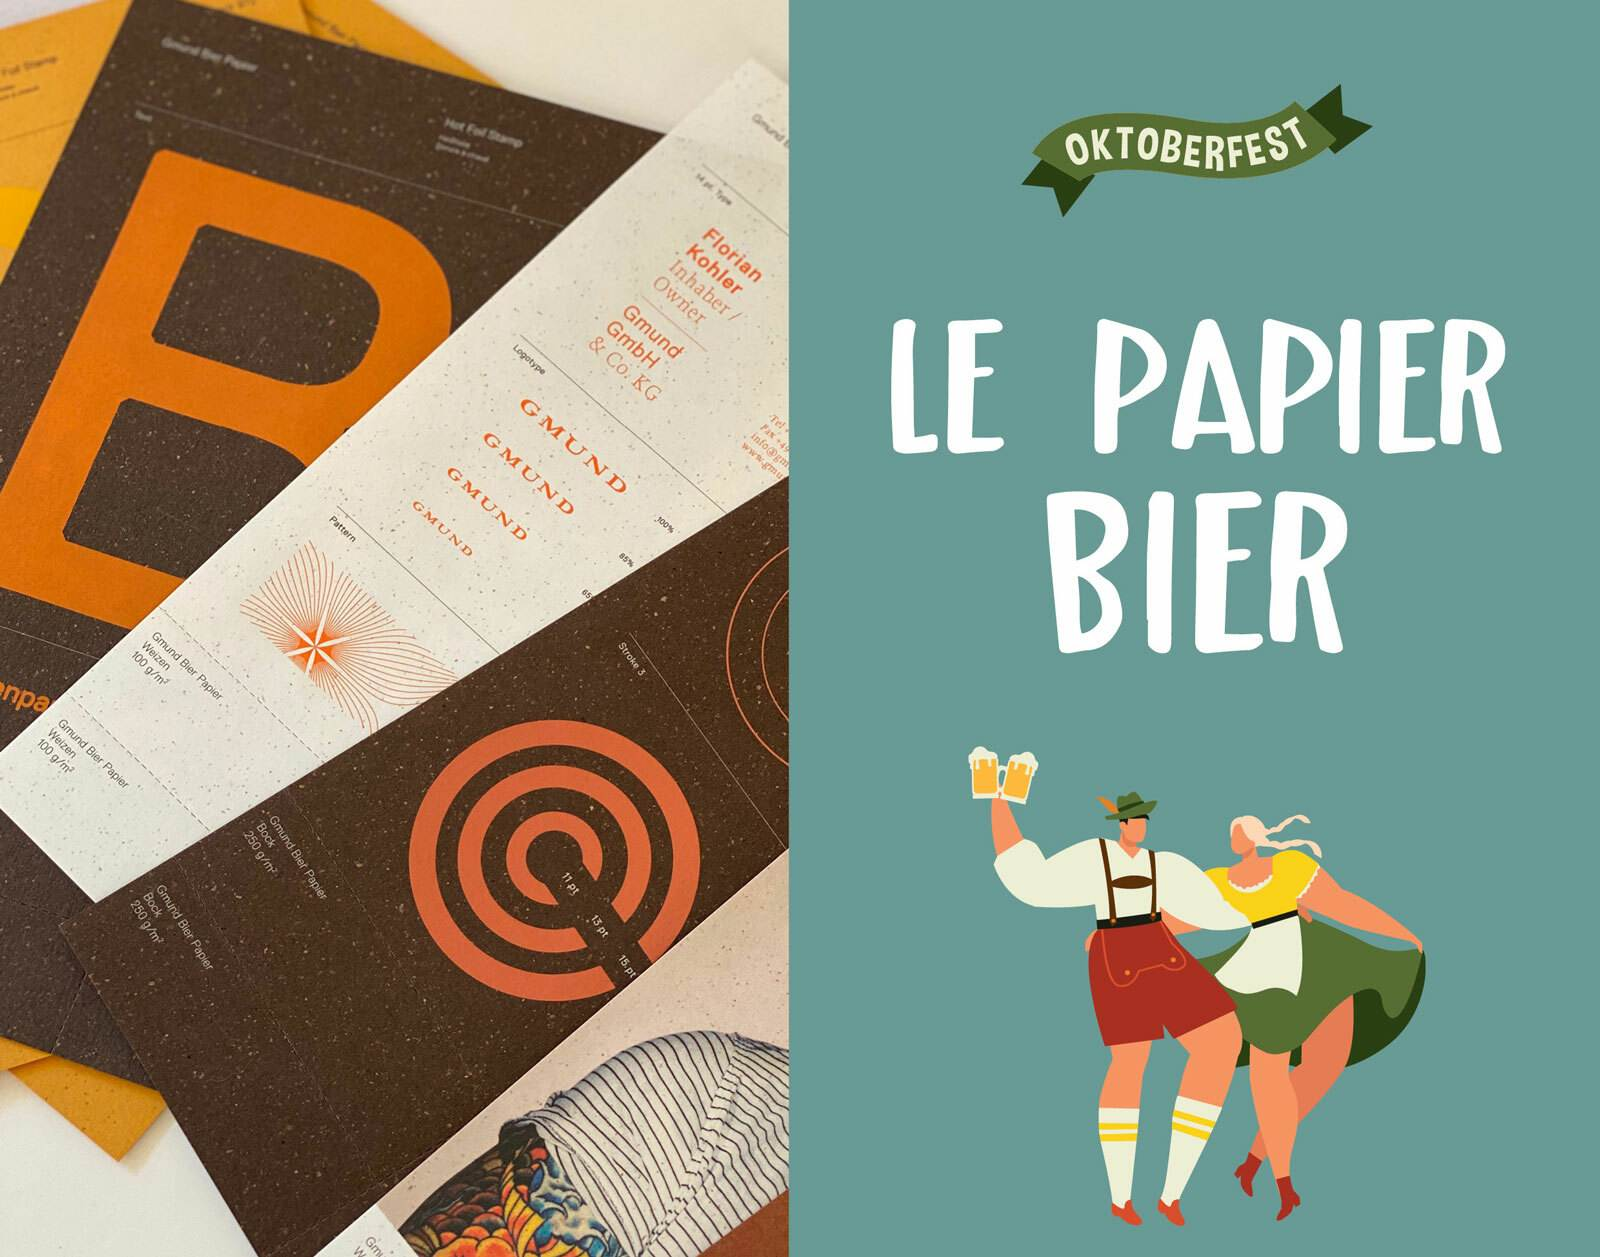 papier-bier-gmund-grafik-plus-xl-5